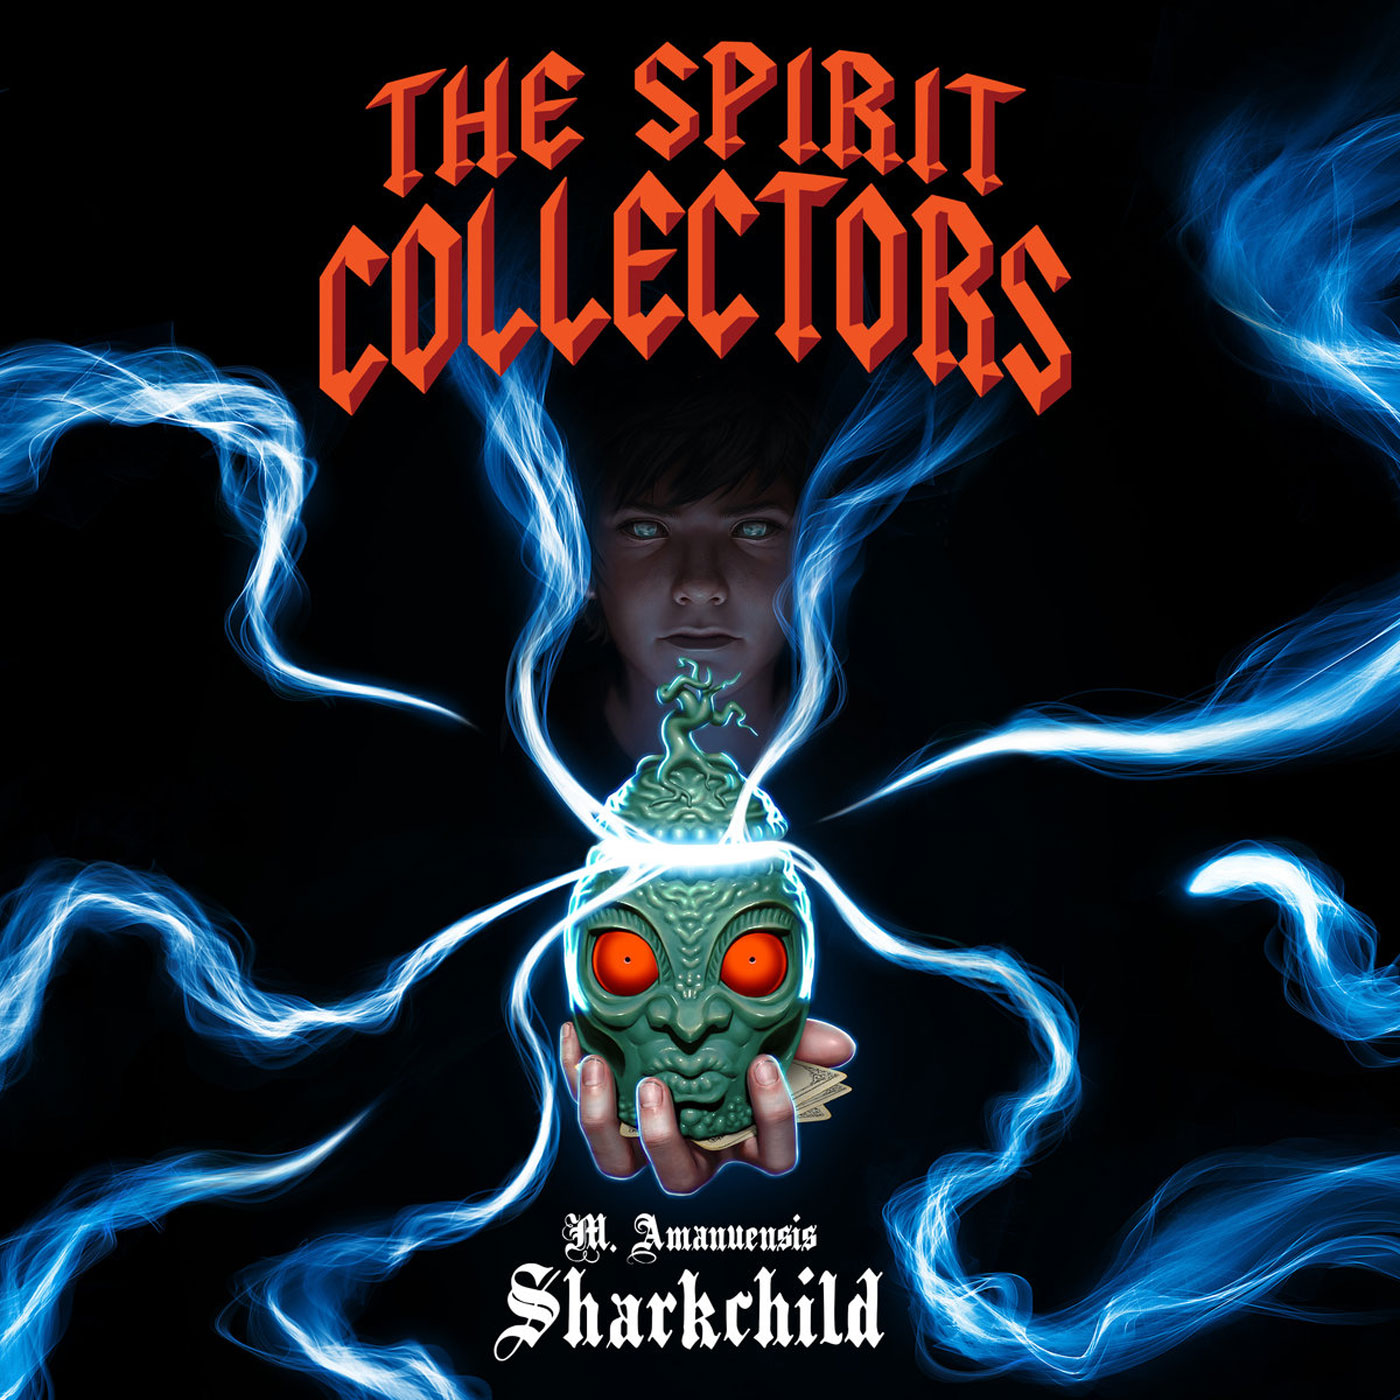 The Spirit Collectors